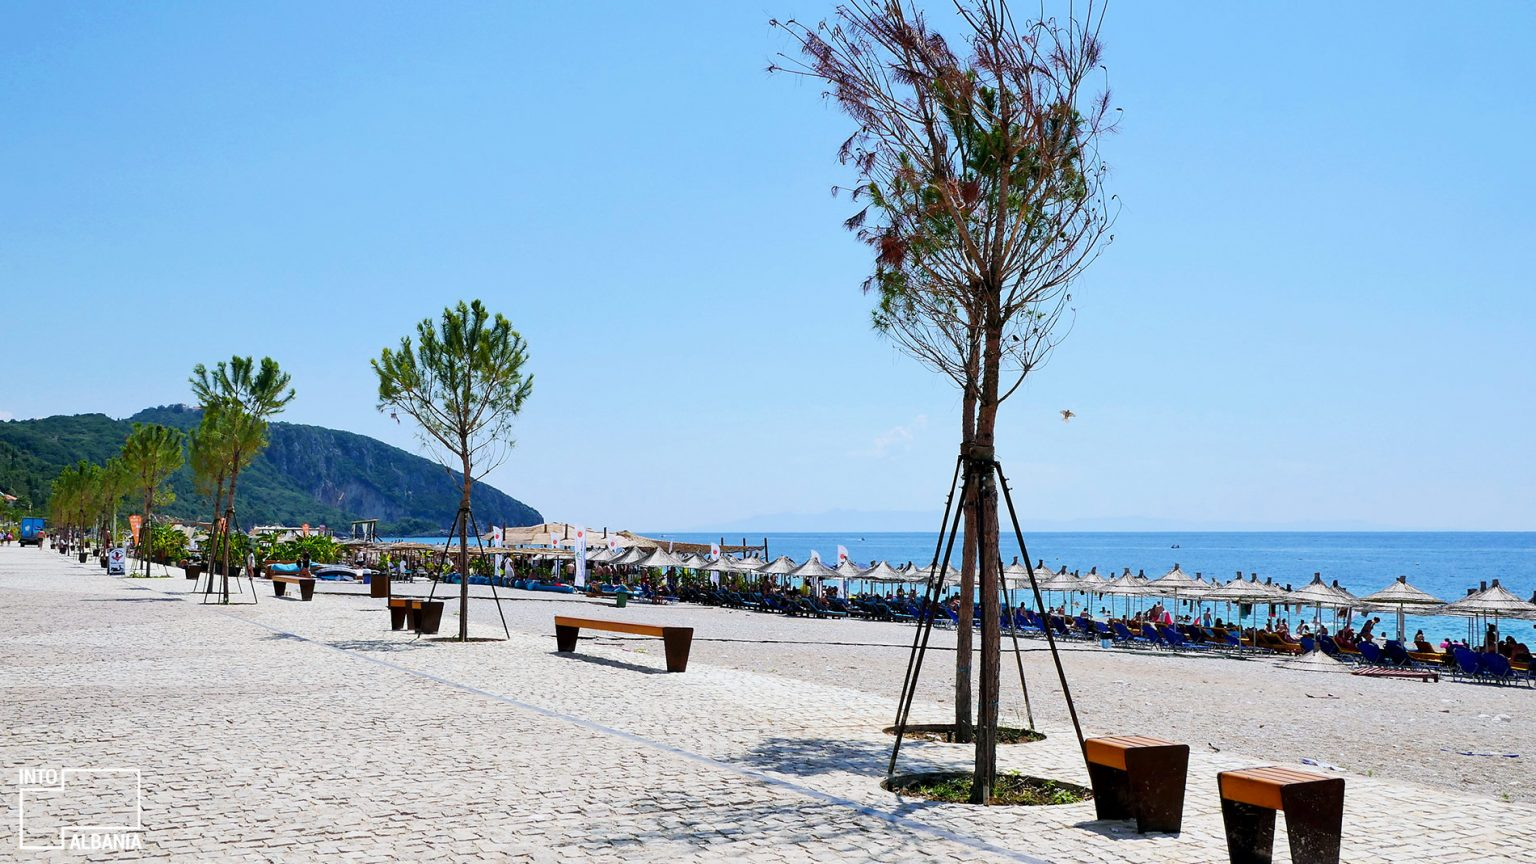 Dhërmi beach, Vlora, photo by IntoAlbania